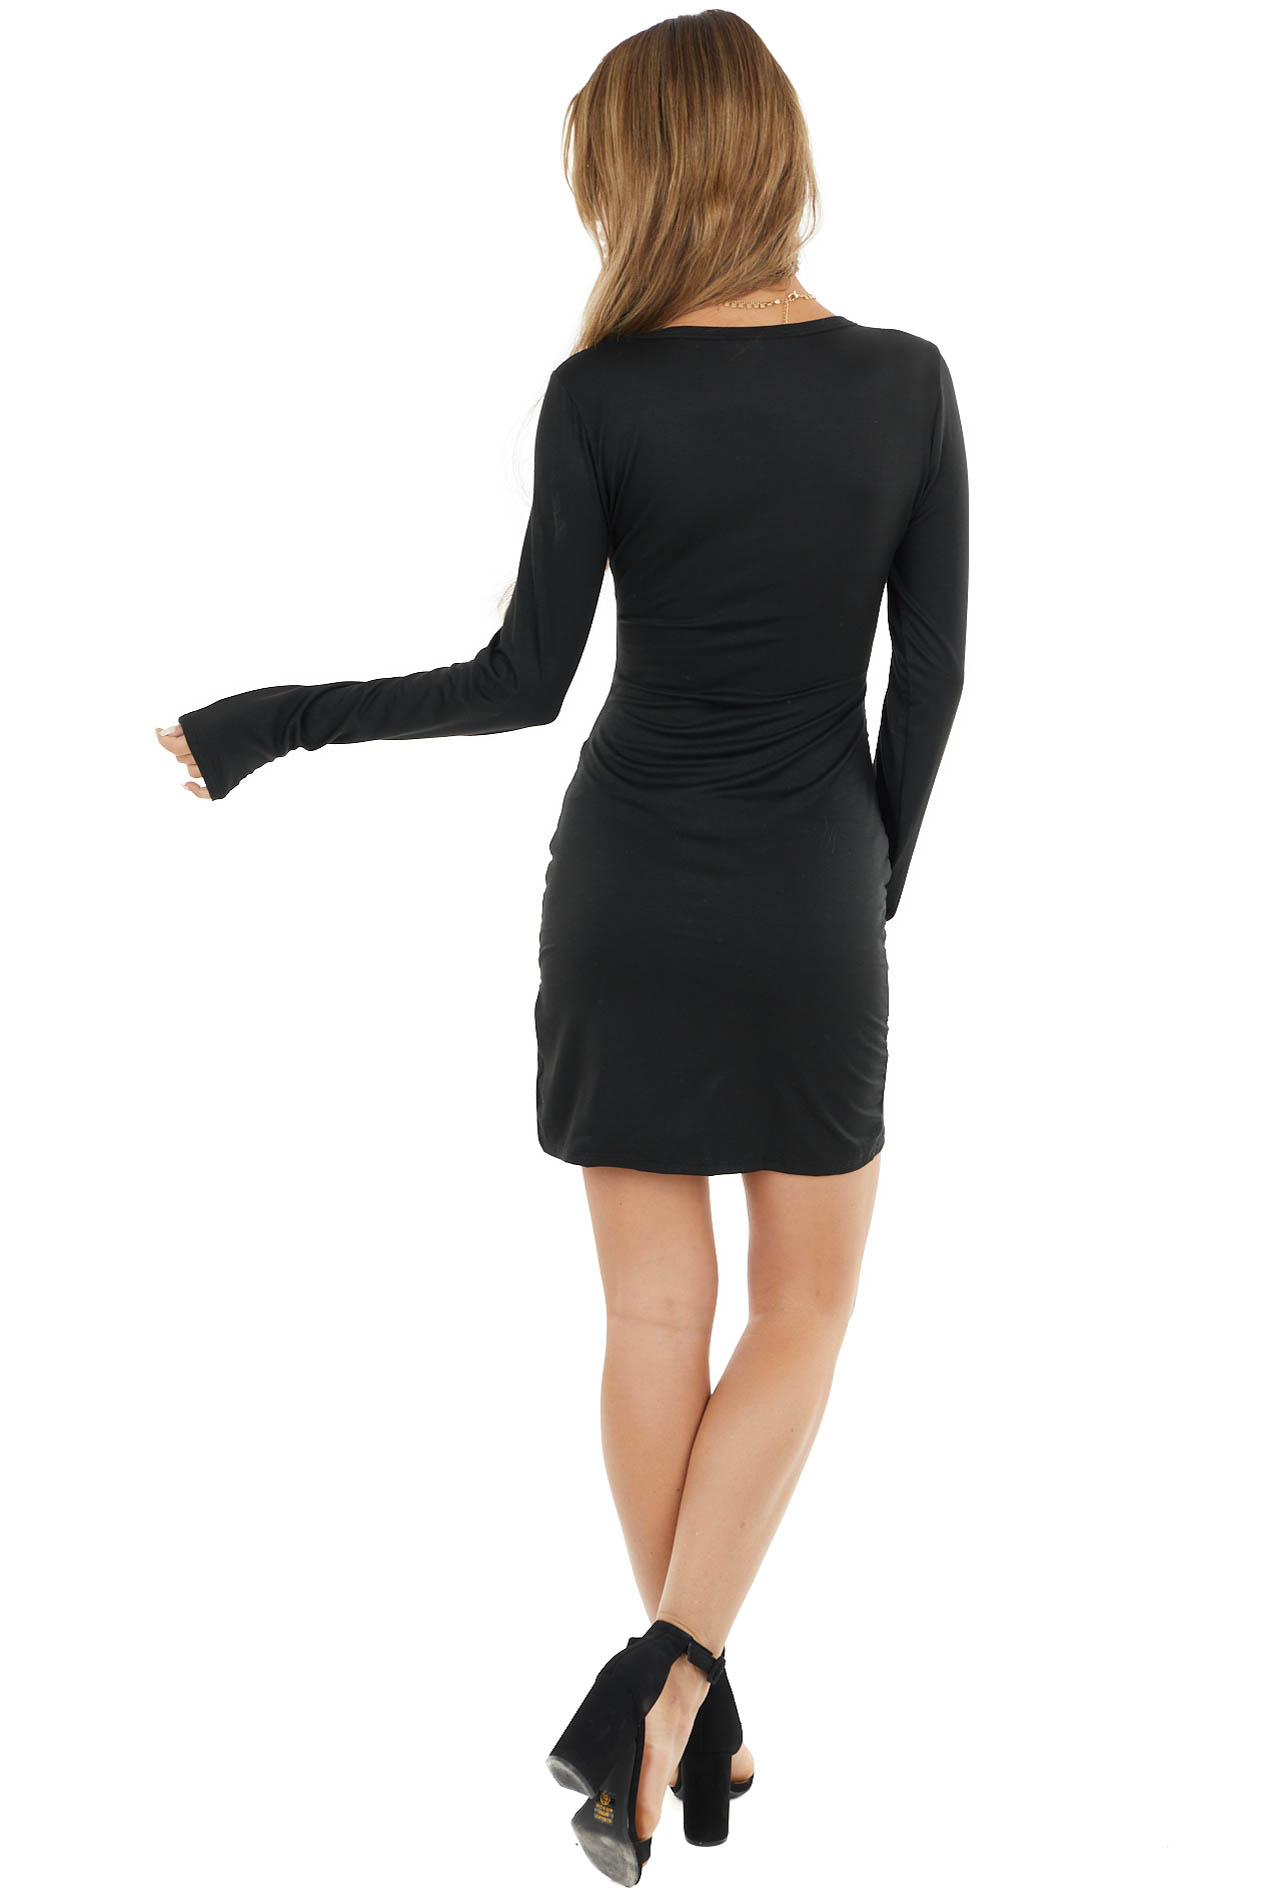 Black Long Sleeve Bodycon Short Dress with Side Ruching